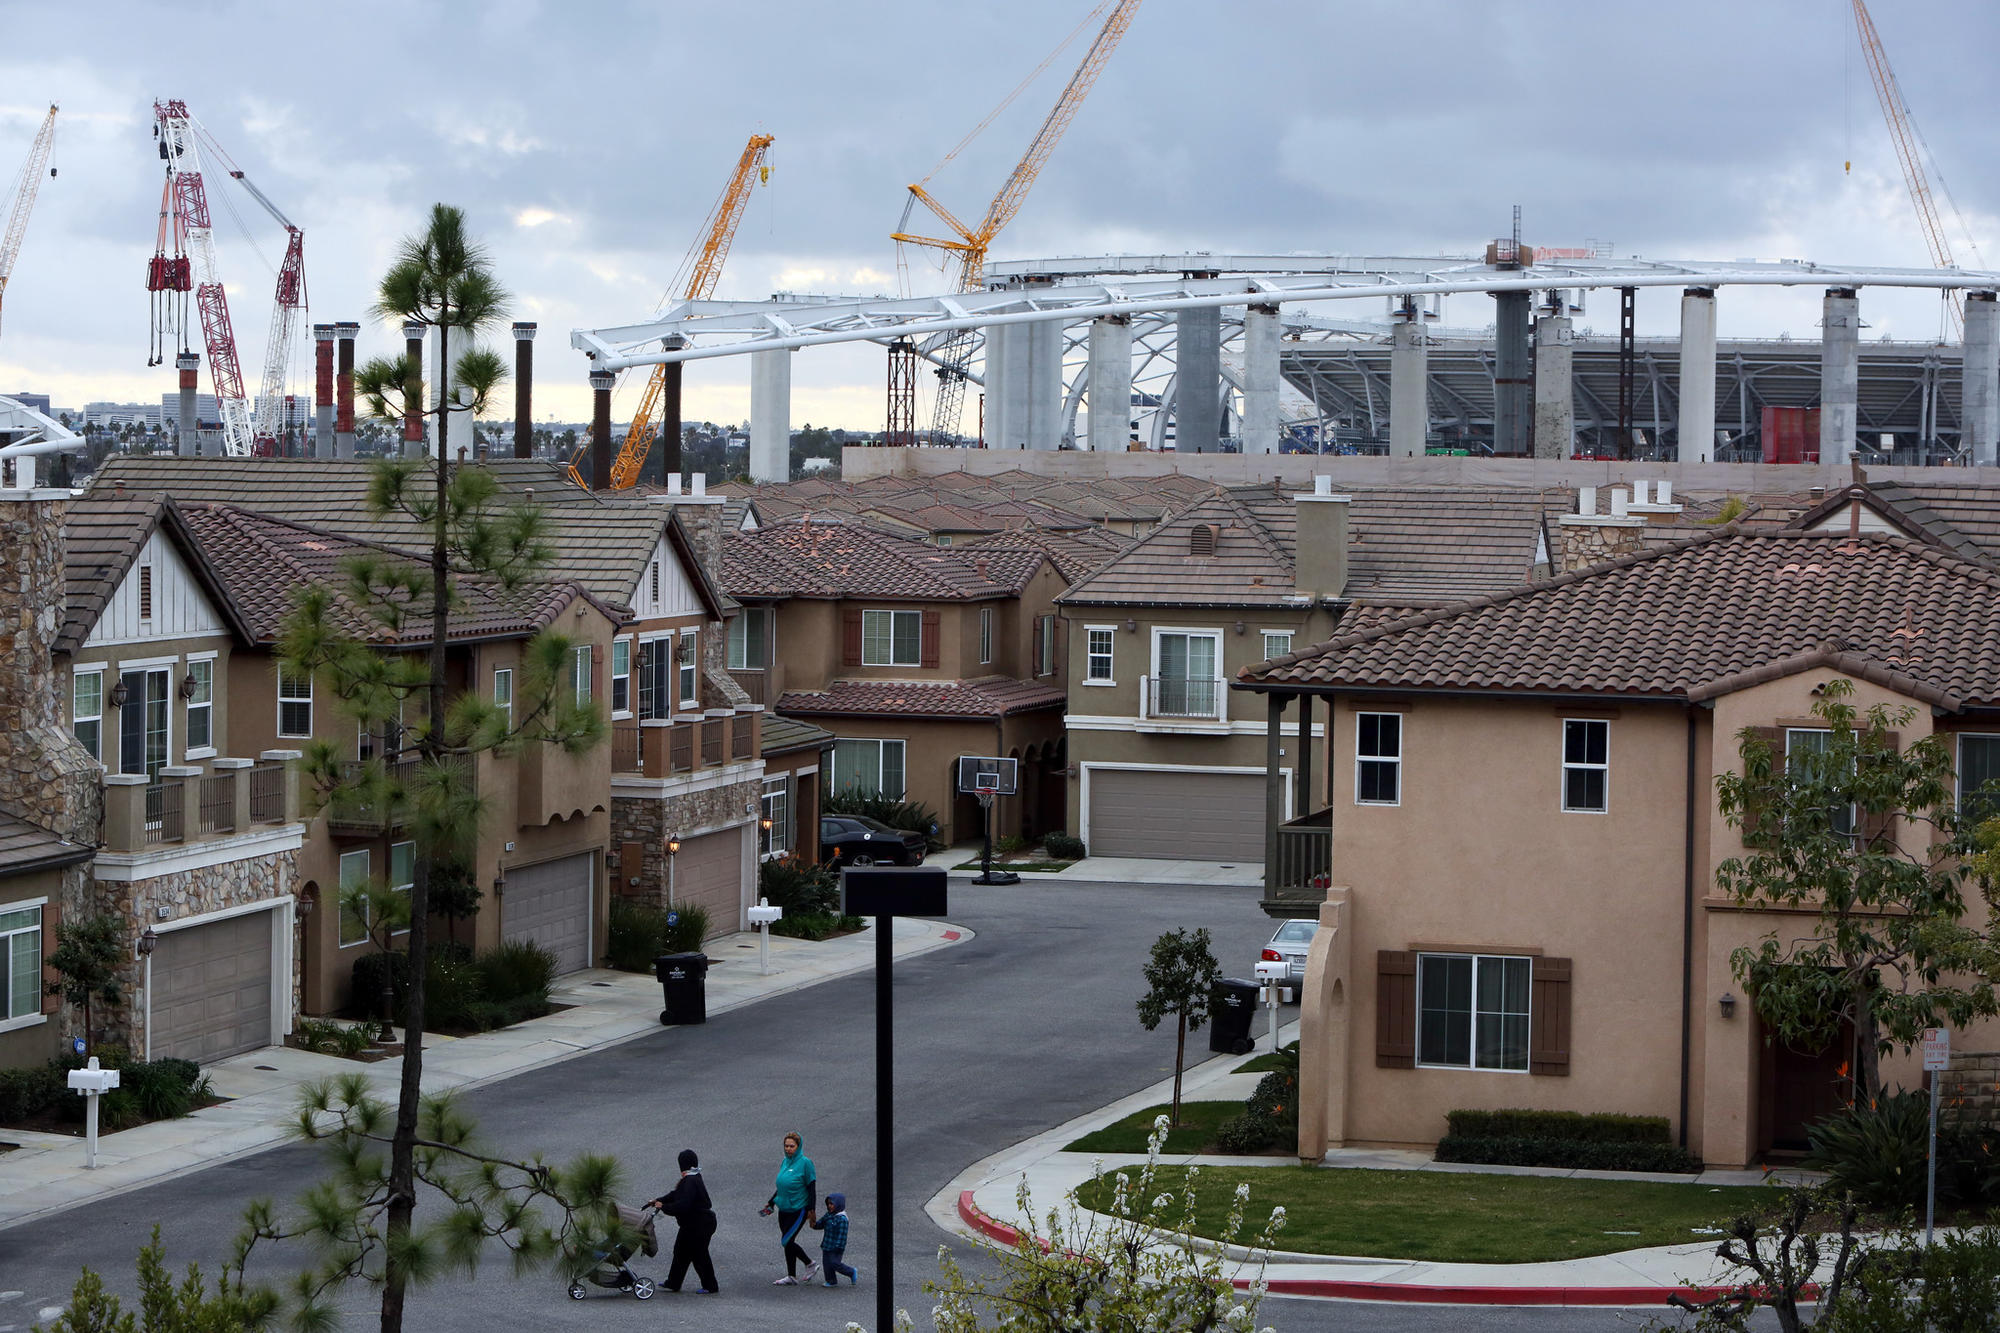 Gated community of Renaissance Homes in Inglewood